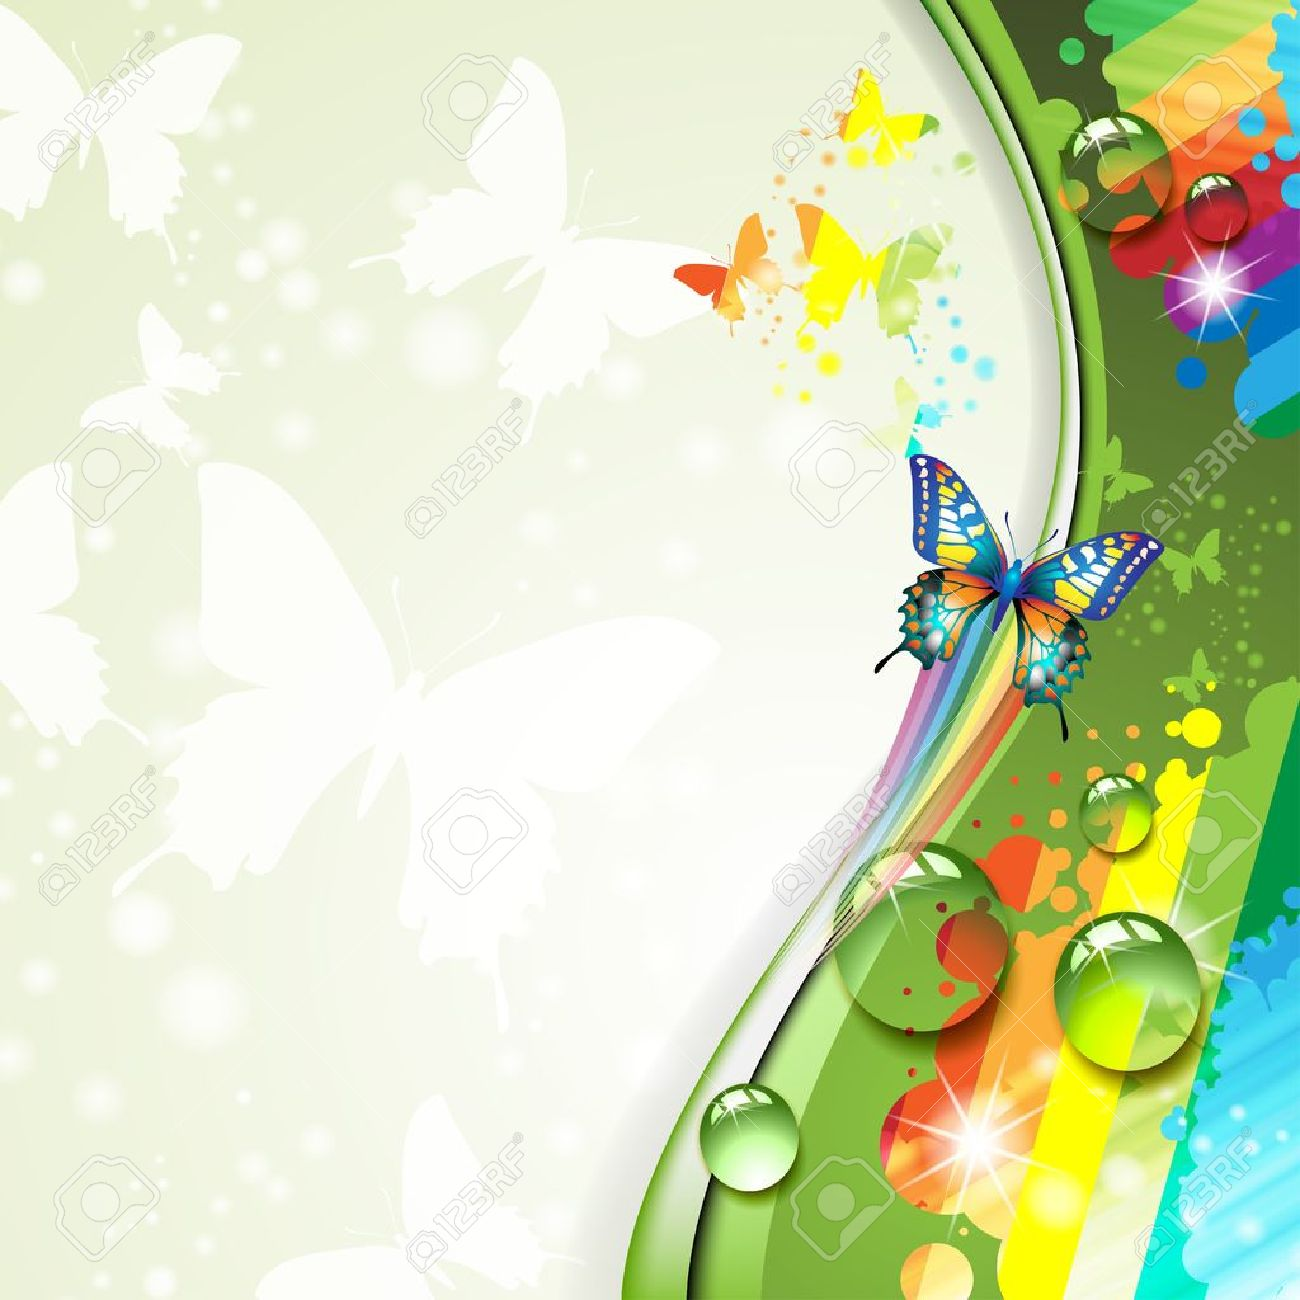 Colorful background with butterfly Stock Vector - 14499431